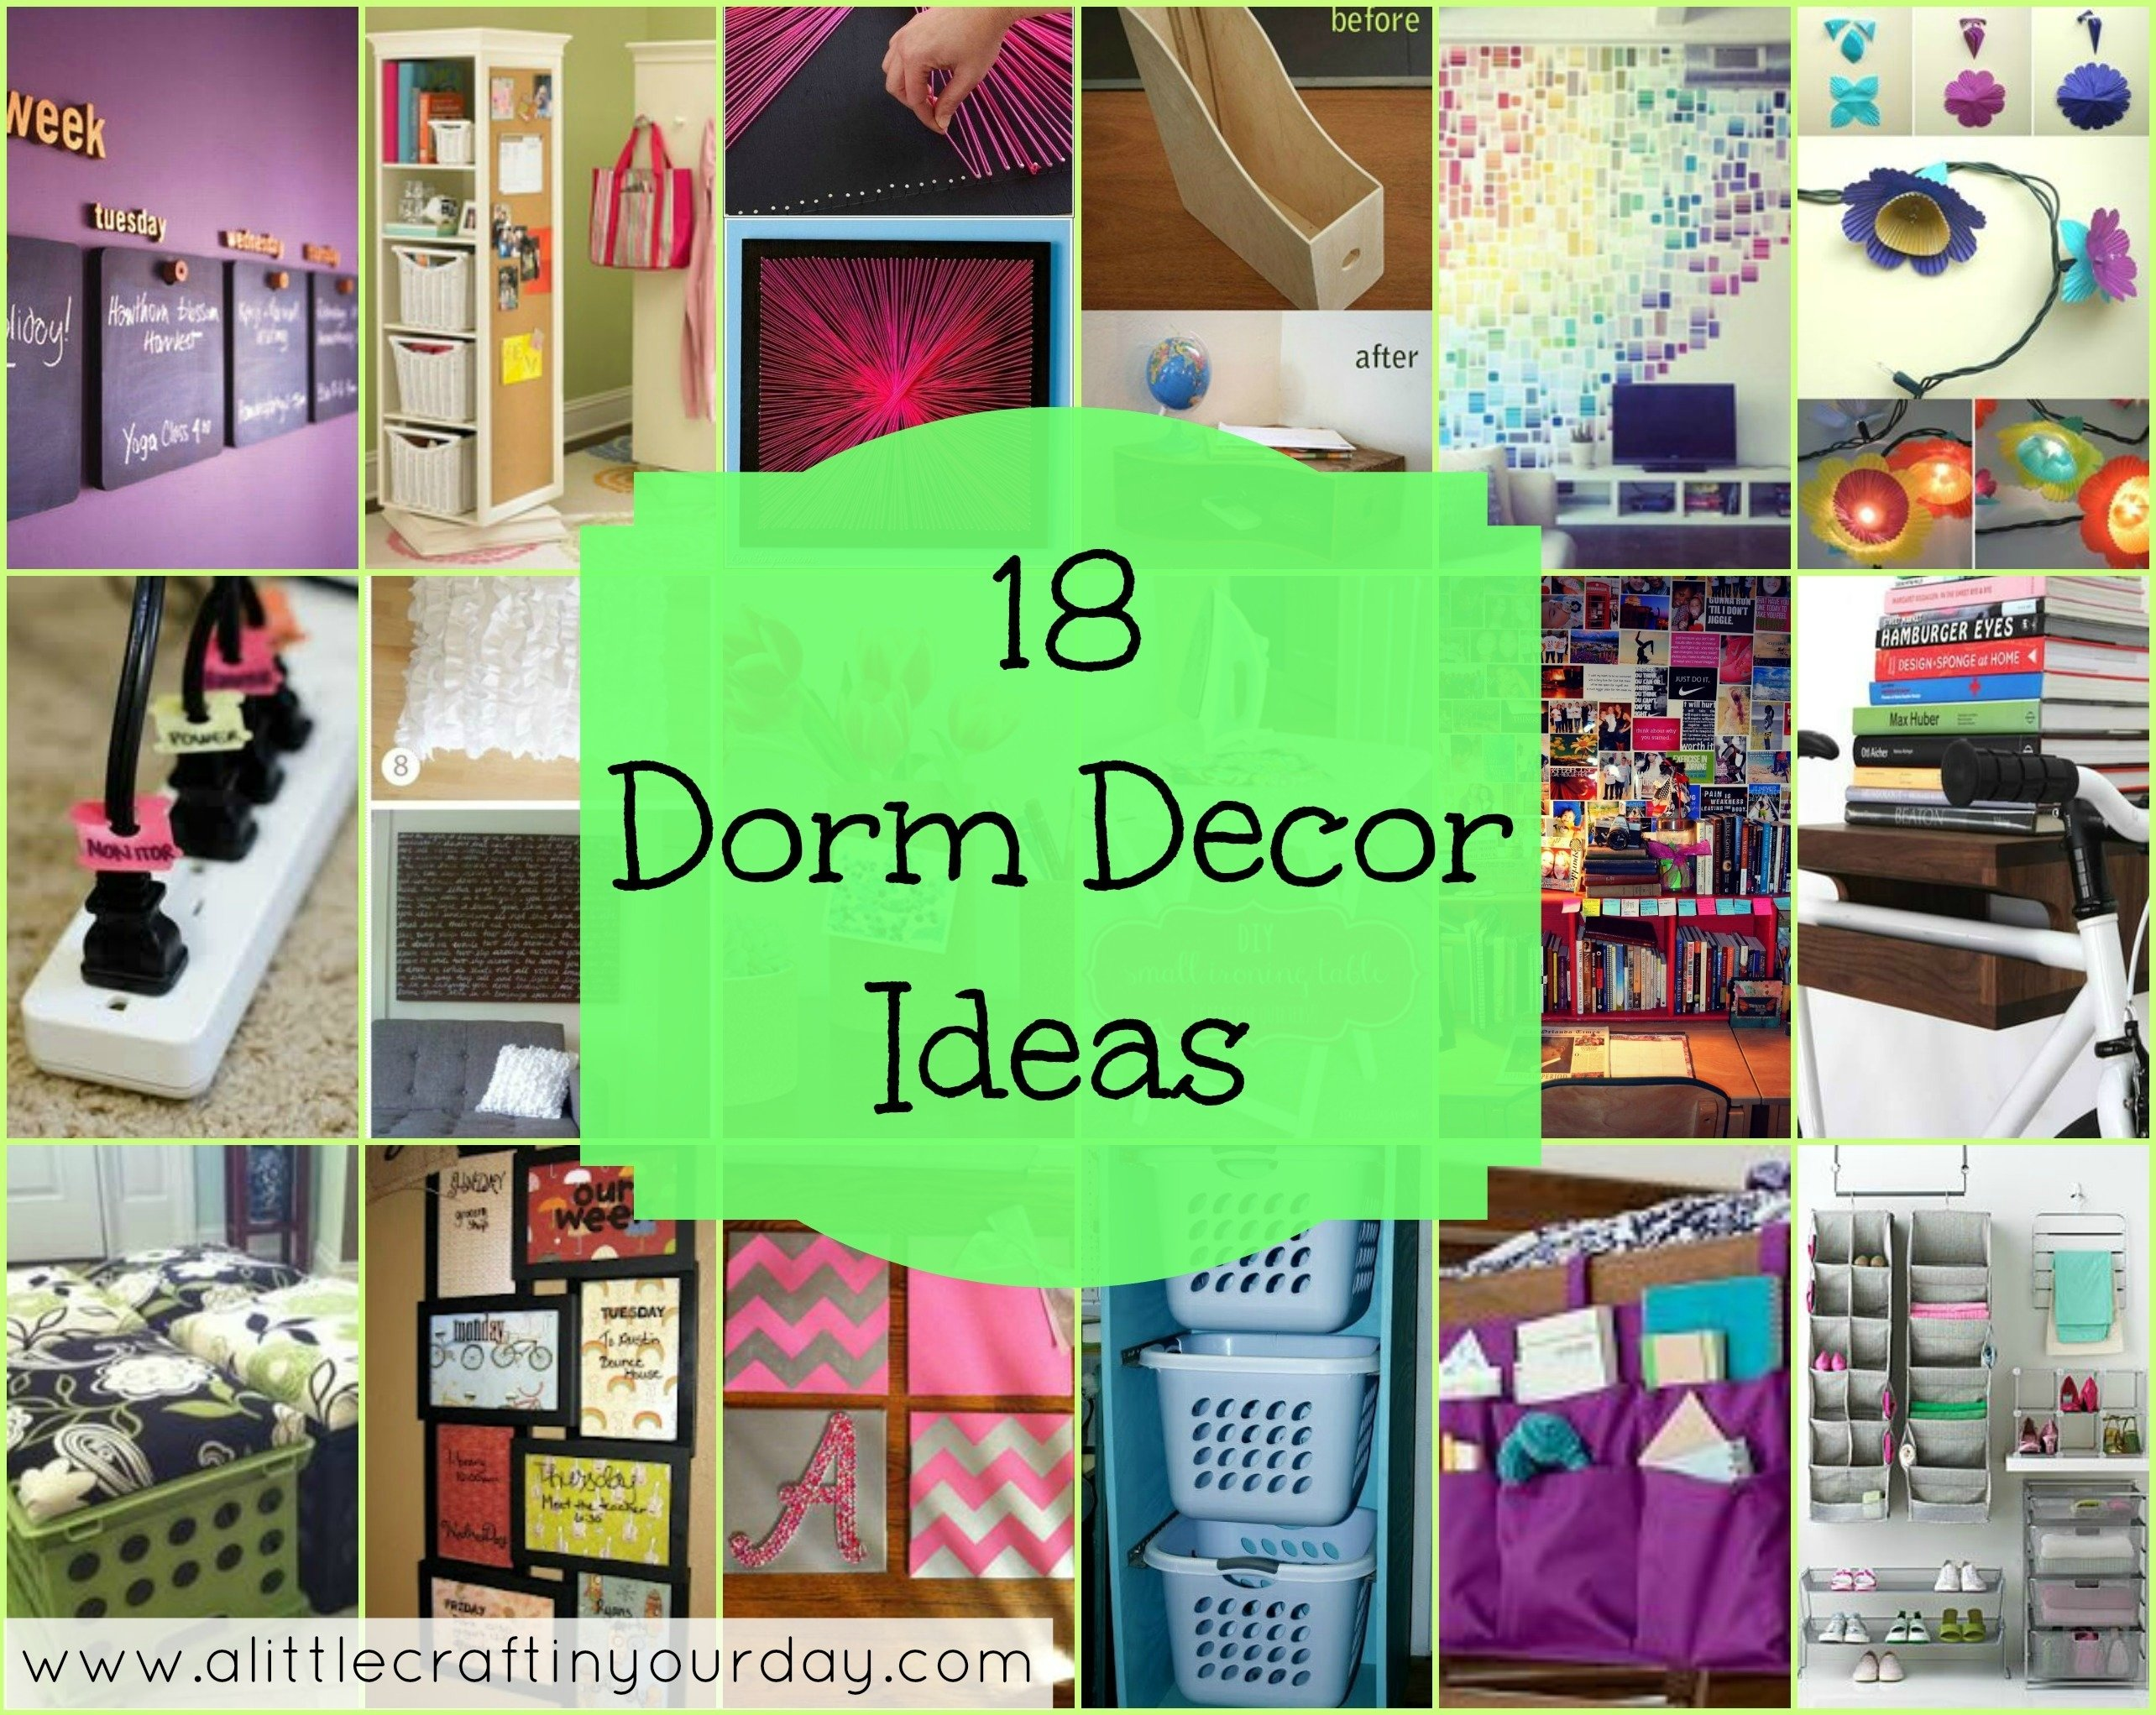 10 Ideal Cool Craft Ideas For Your Room 18 dorm decor ideas a little craft in your day 2